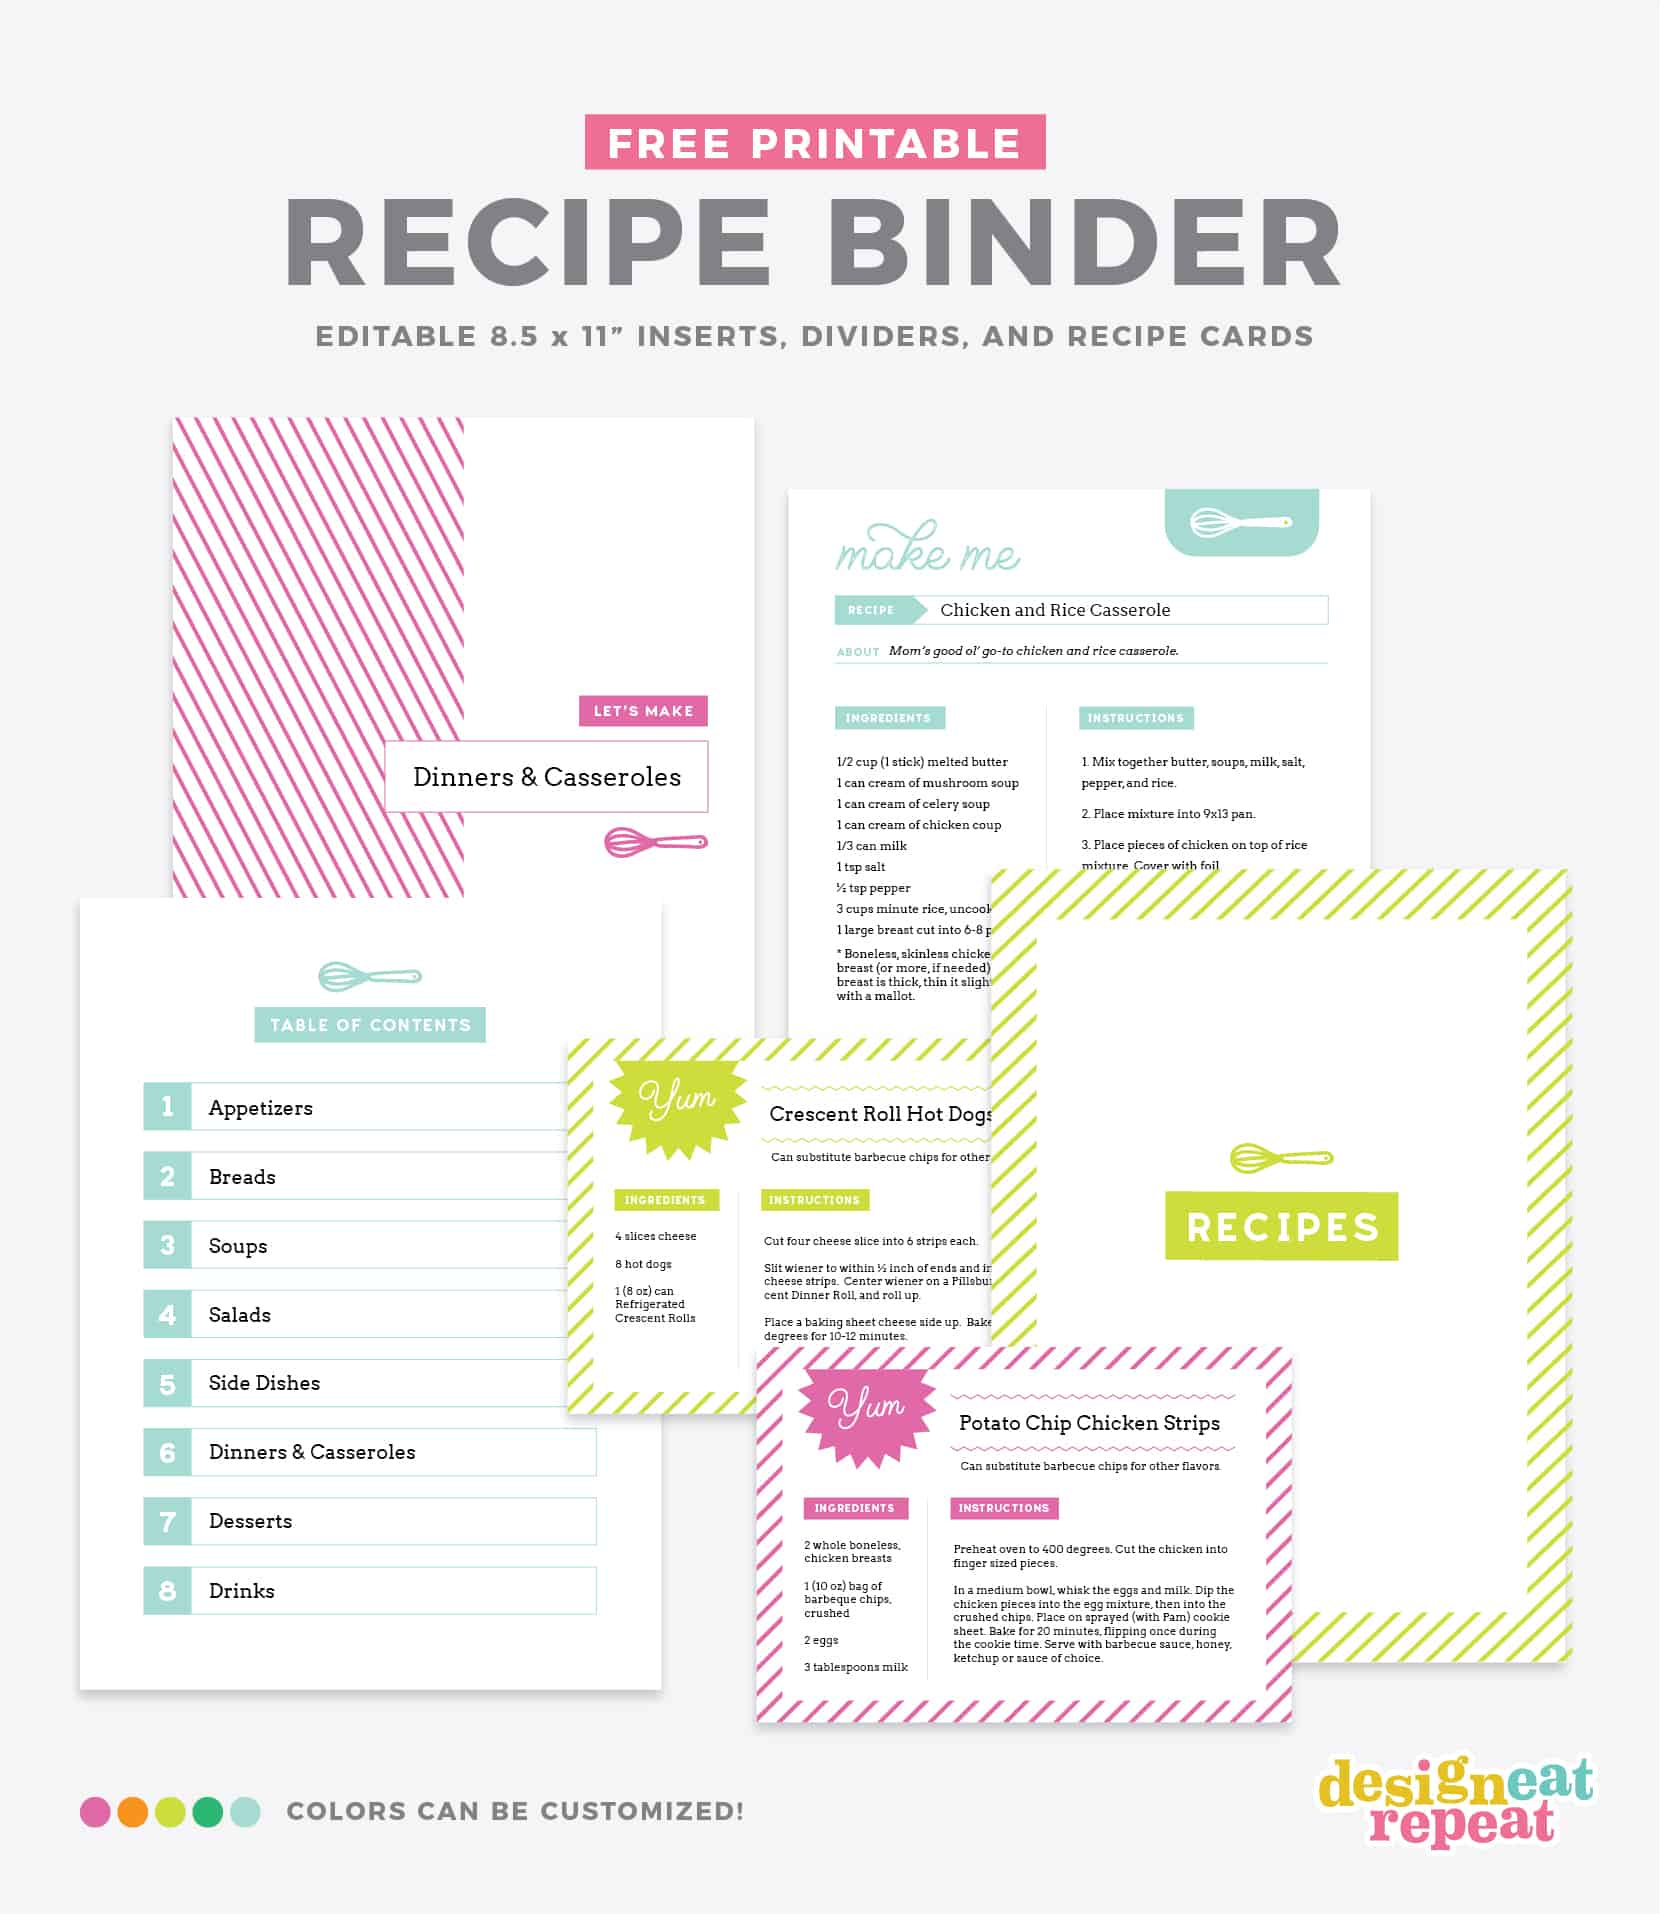 Diy Recipe Book (With Free Printable Recipe Binder Kit!) - Free Printable Recipe Dividers